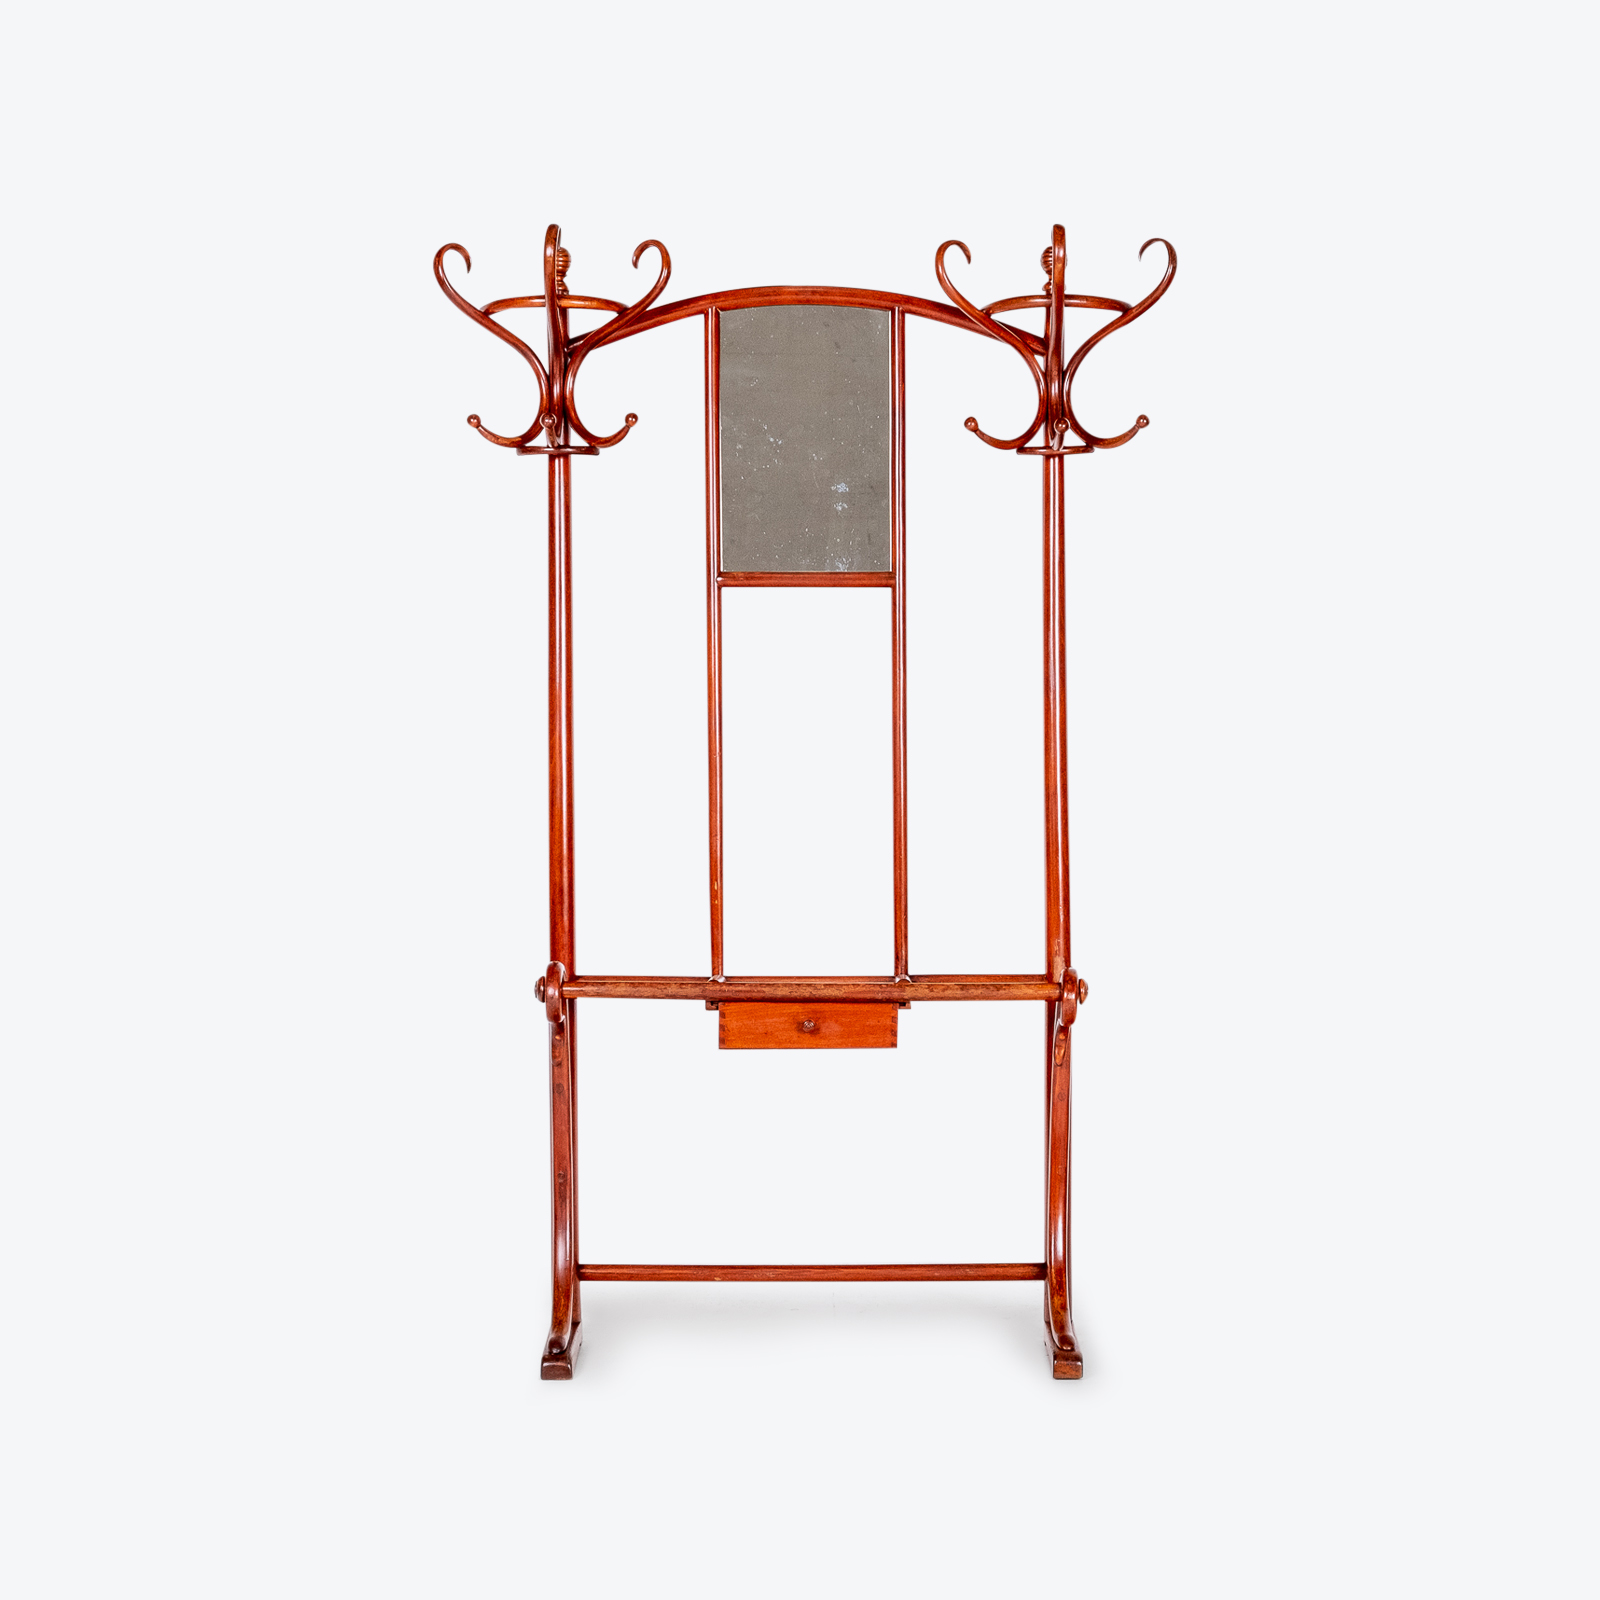 Model No. 4 Coat Stand By Michael Thonet For Thonet, Vienna, 1910 Hero